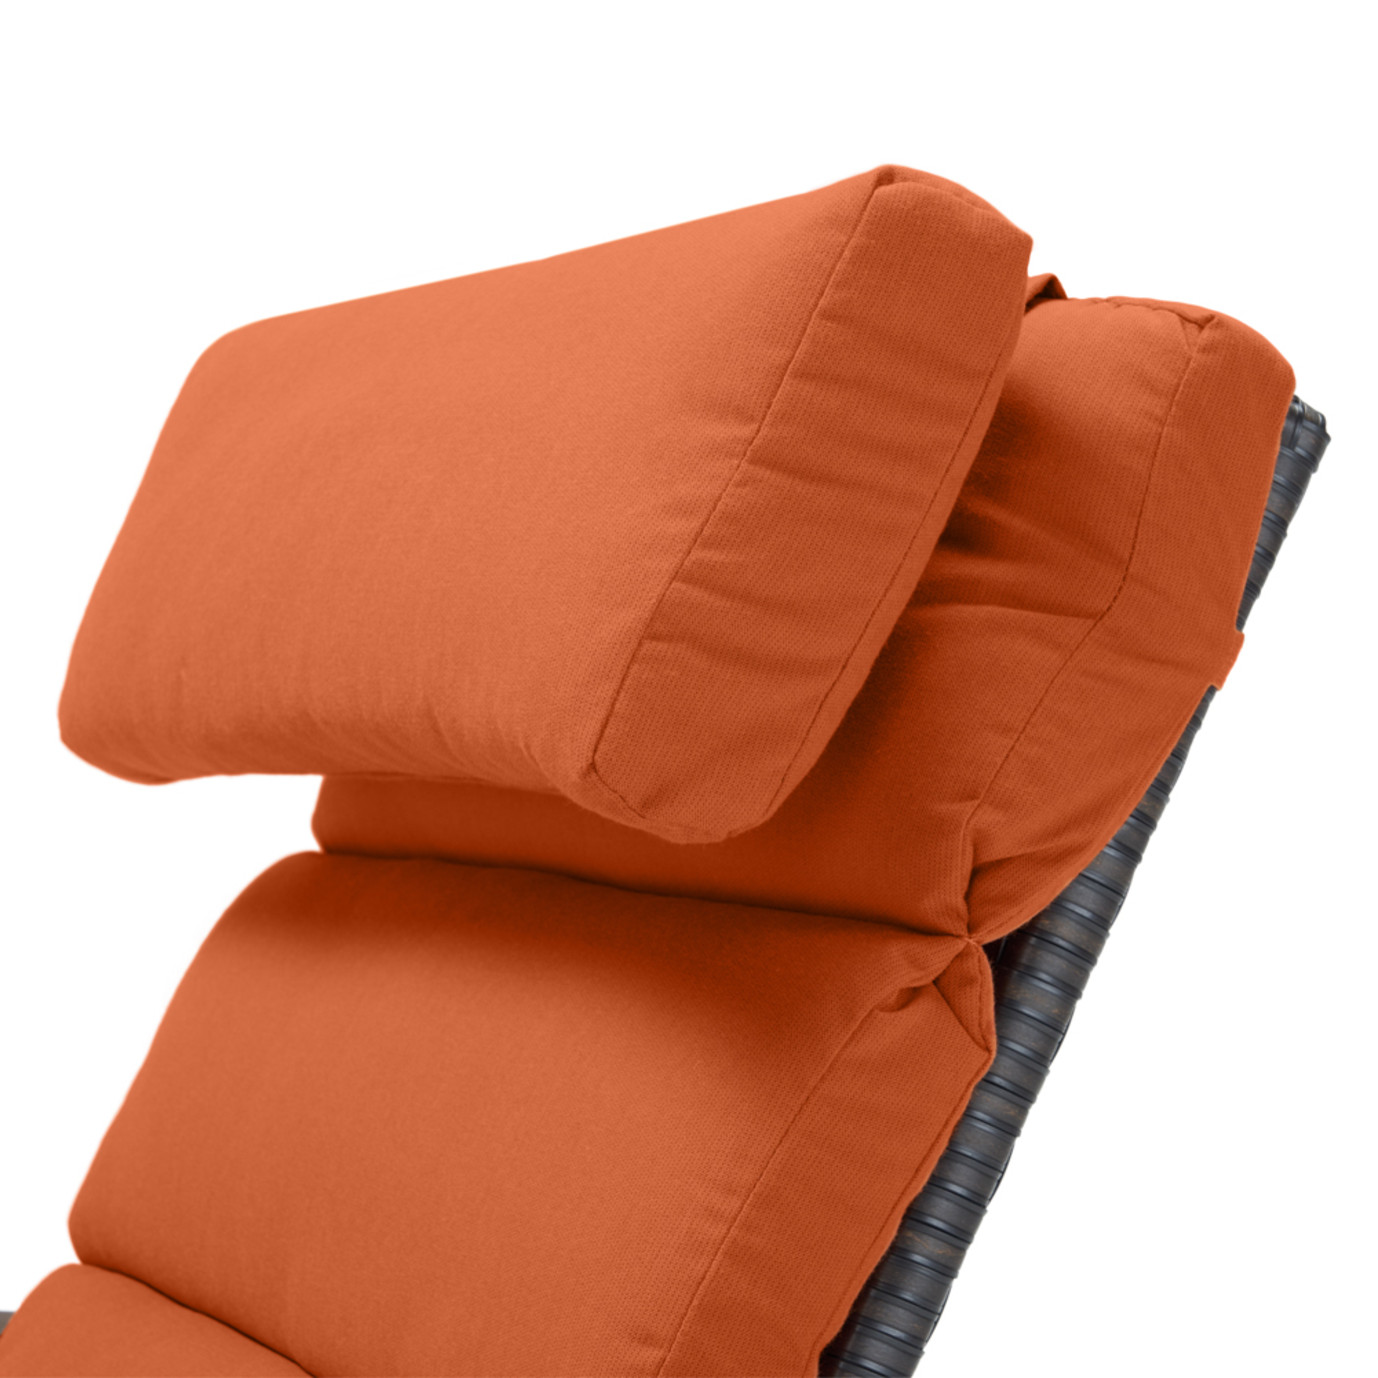 Barcelo™ Chaise Lounge 2pk - Tikka Orange